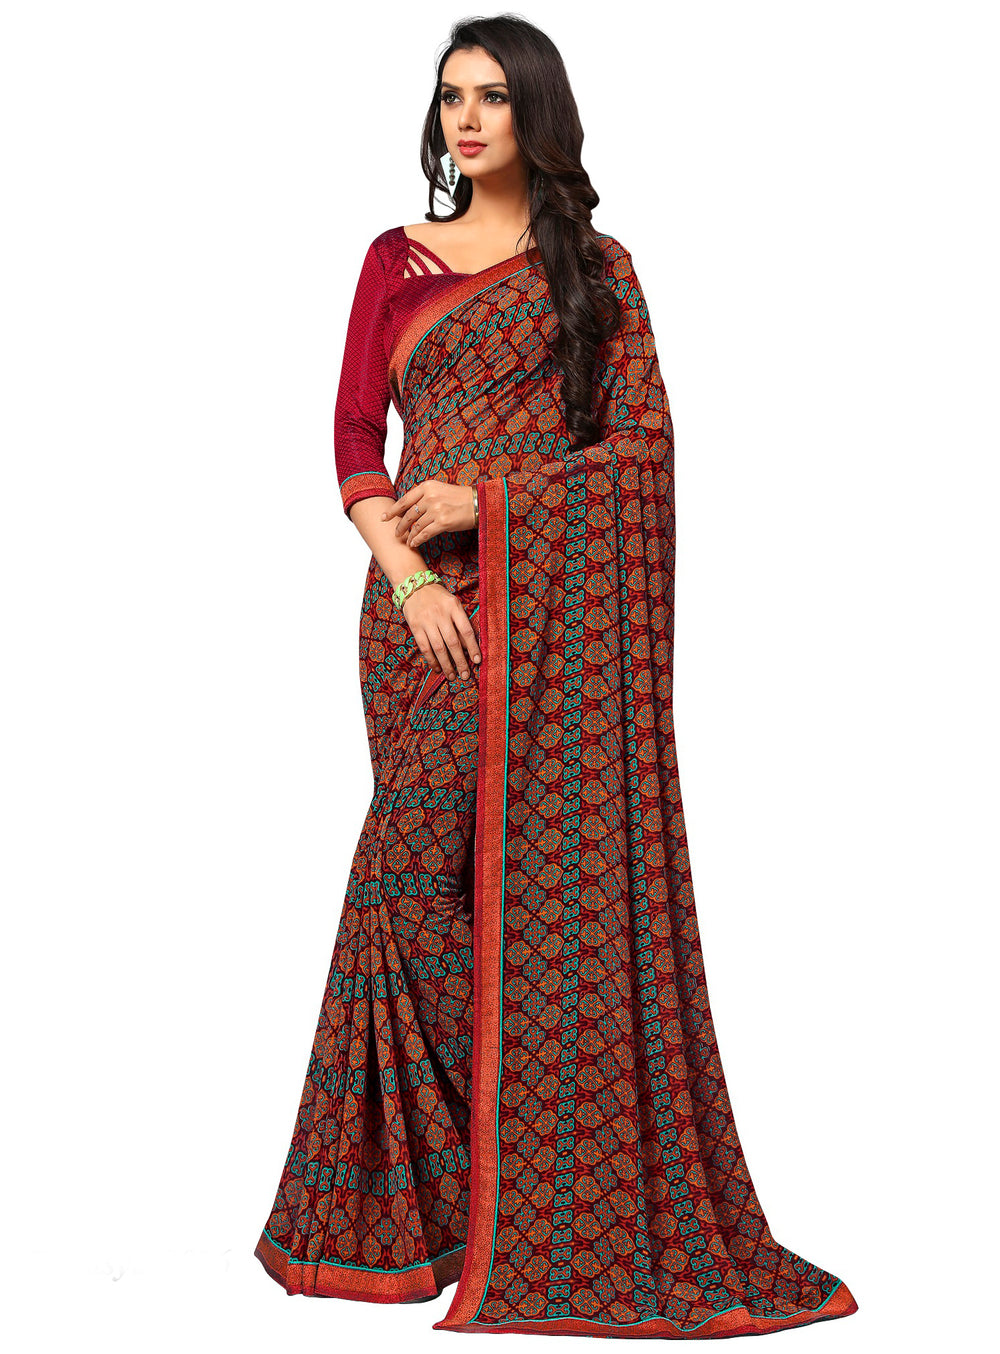 bb4ebb53f2 Roop Kashish Women Multi-Colou Red Party Wear Georgette Printed Saree With  Border And Georgette Blouse Material_RKAM8026 - Buy Roop Kashish Women ...